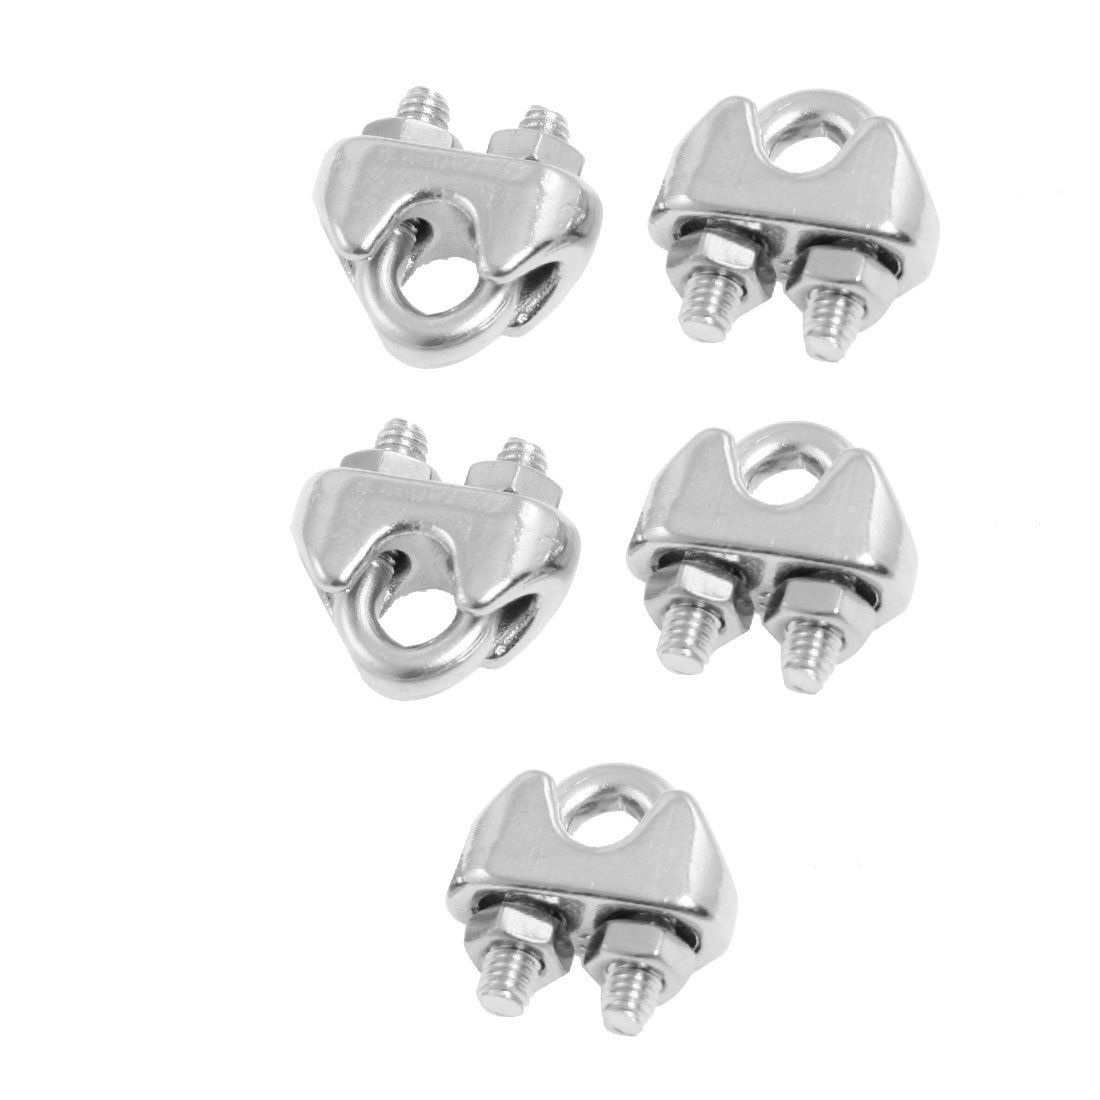 Buy steel wire clips and get free shipping on AliExpress.com